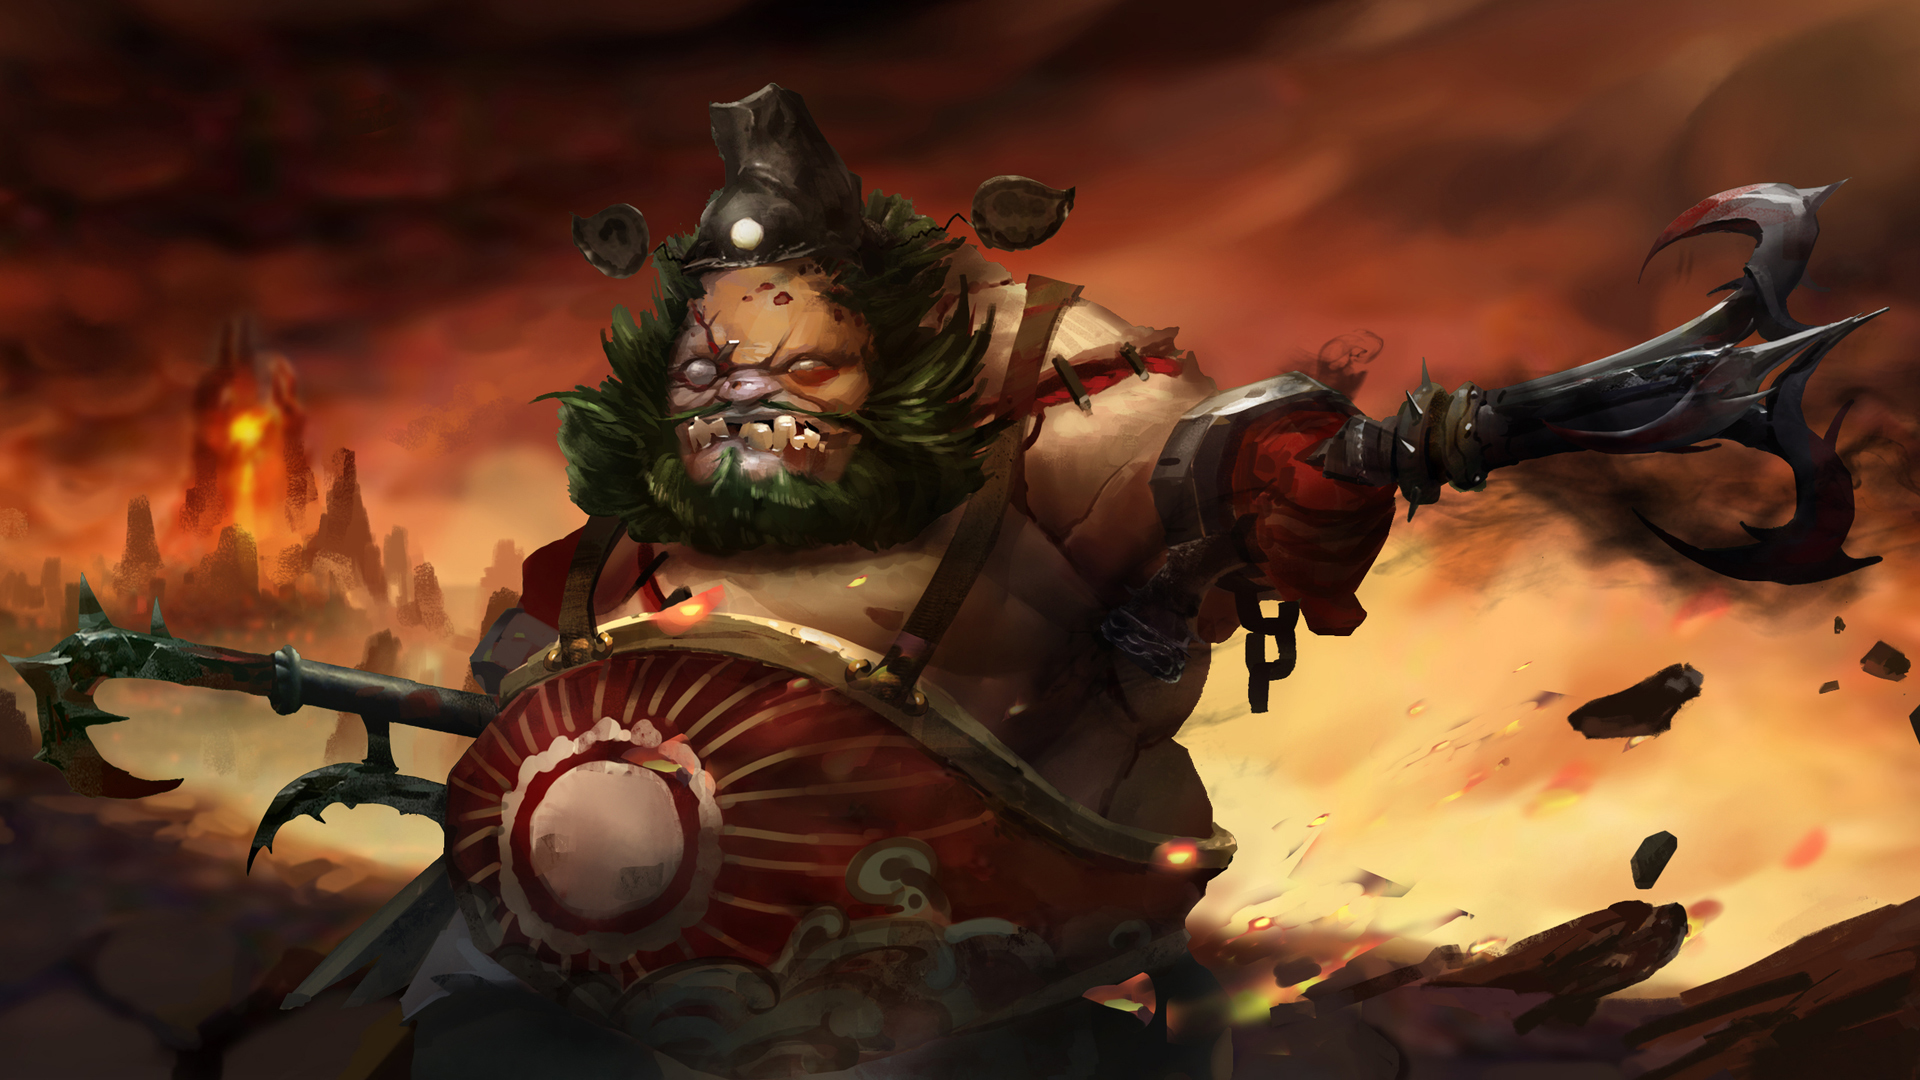 Dota Pudge The Butcher Wallpapers